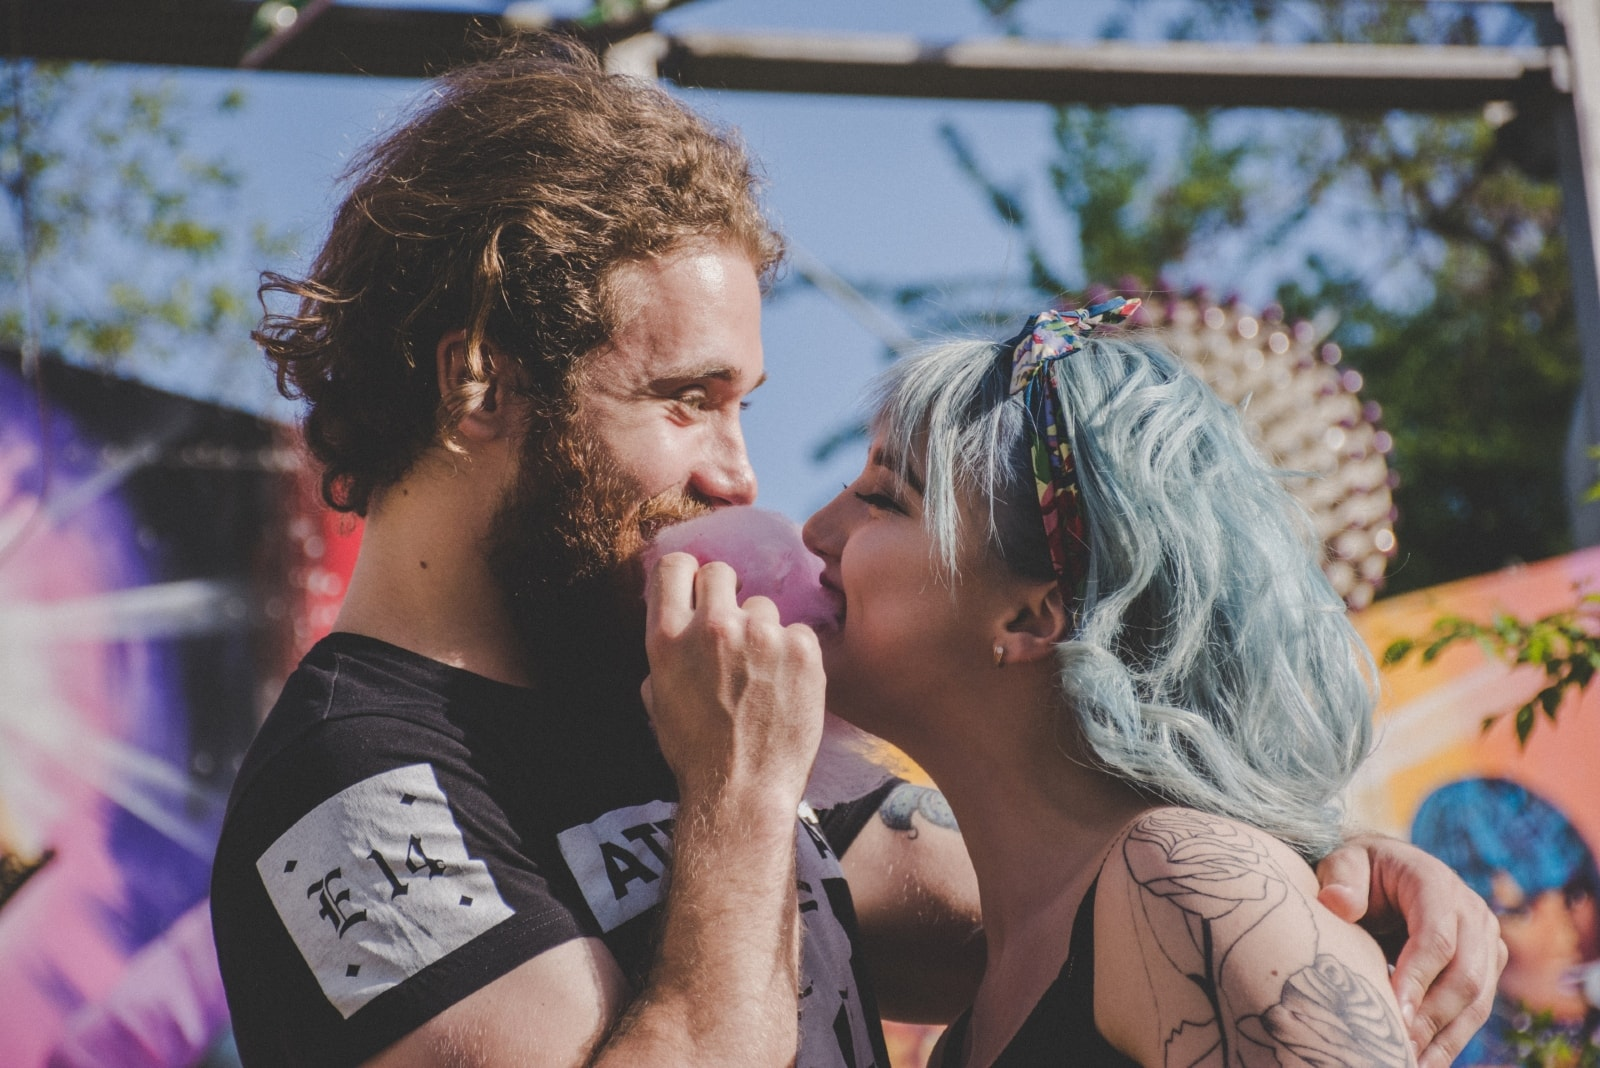 man and woman smiling while eating cotton candy